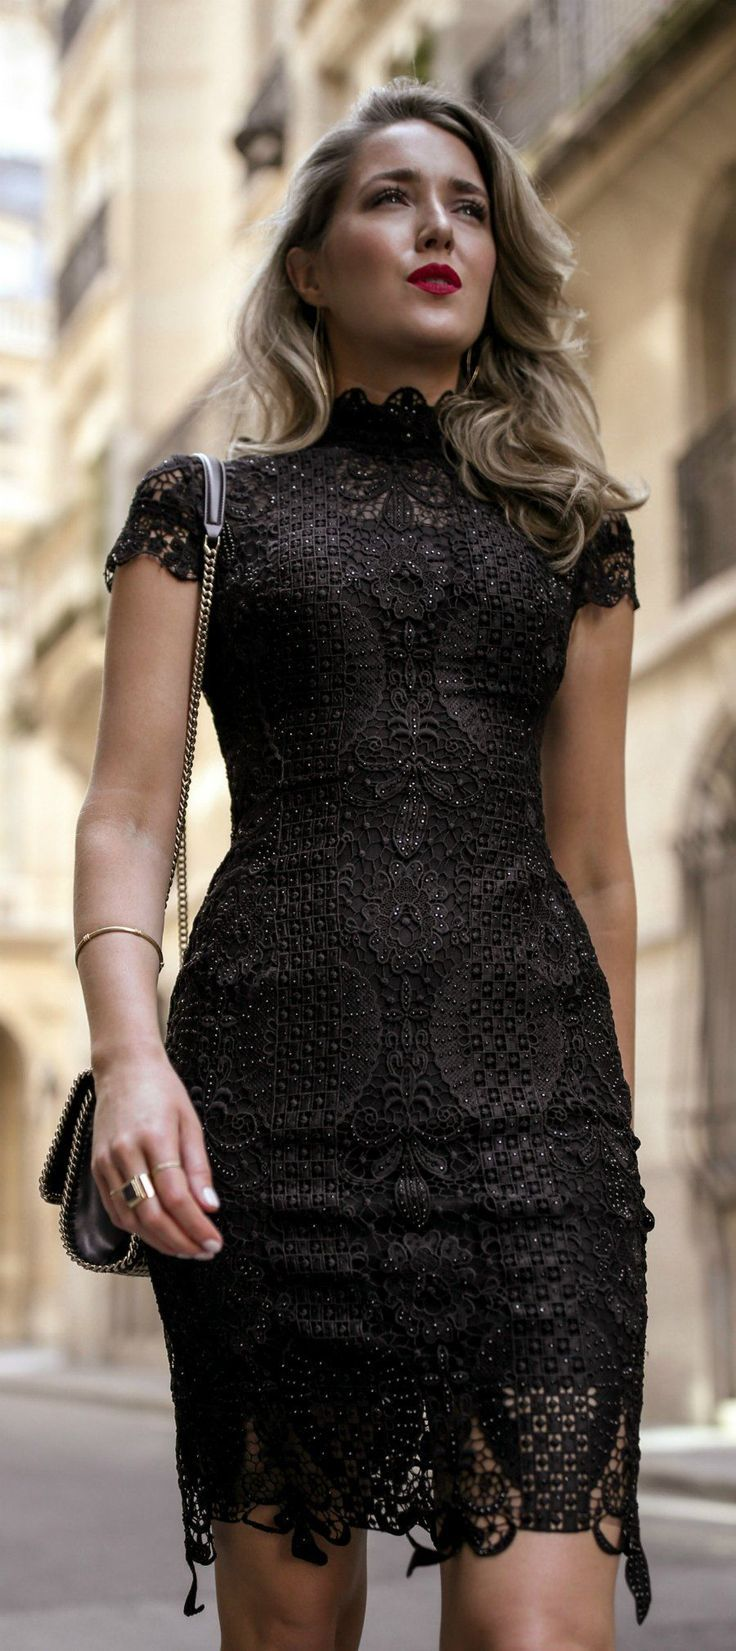 30 Dresses In 30 Days Day 11 What To Wear To A Cocktail Attire Wedding Black Lace Short Sleeve Mini Dress Gold Metallic Op Fashion Night Outfits Dresses [ 1651 x 736 Pixel ]